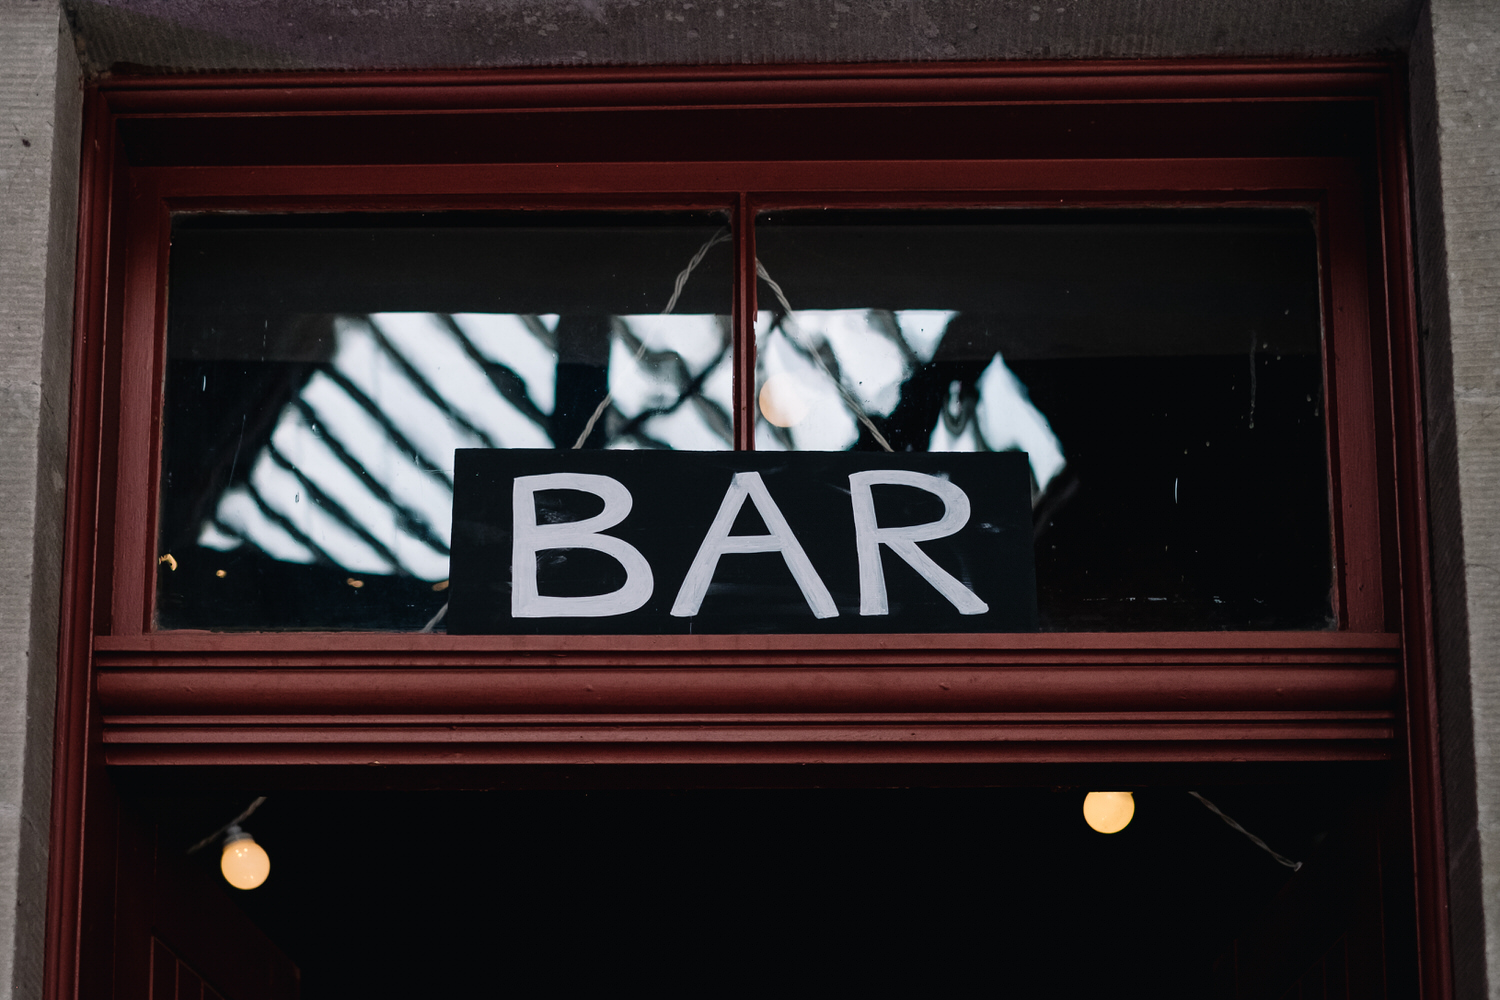 Bar sign hangs above the door of the bar's entrance.